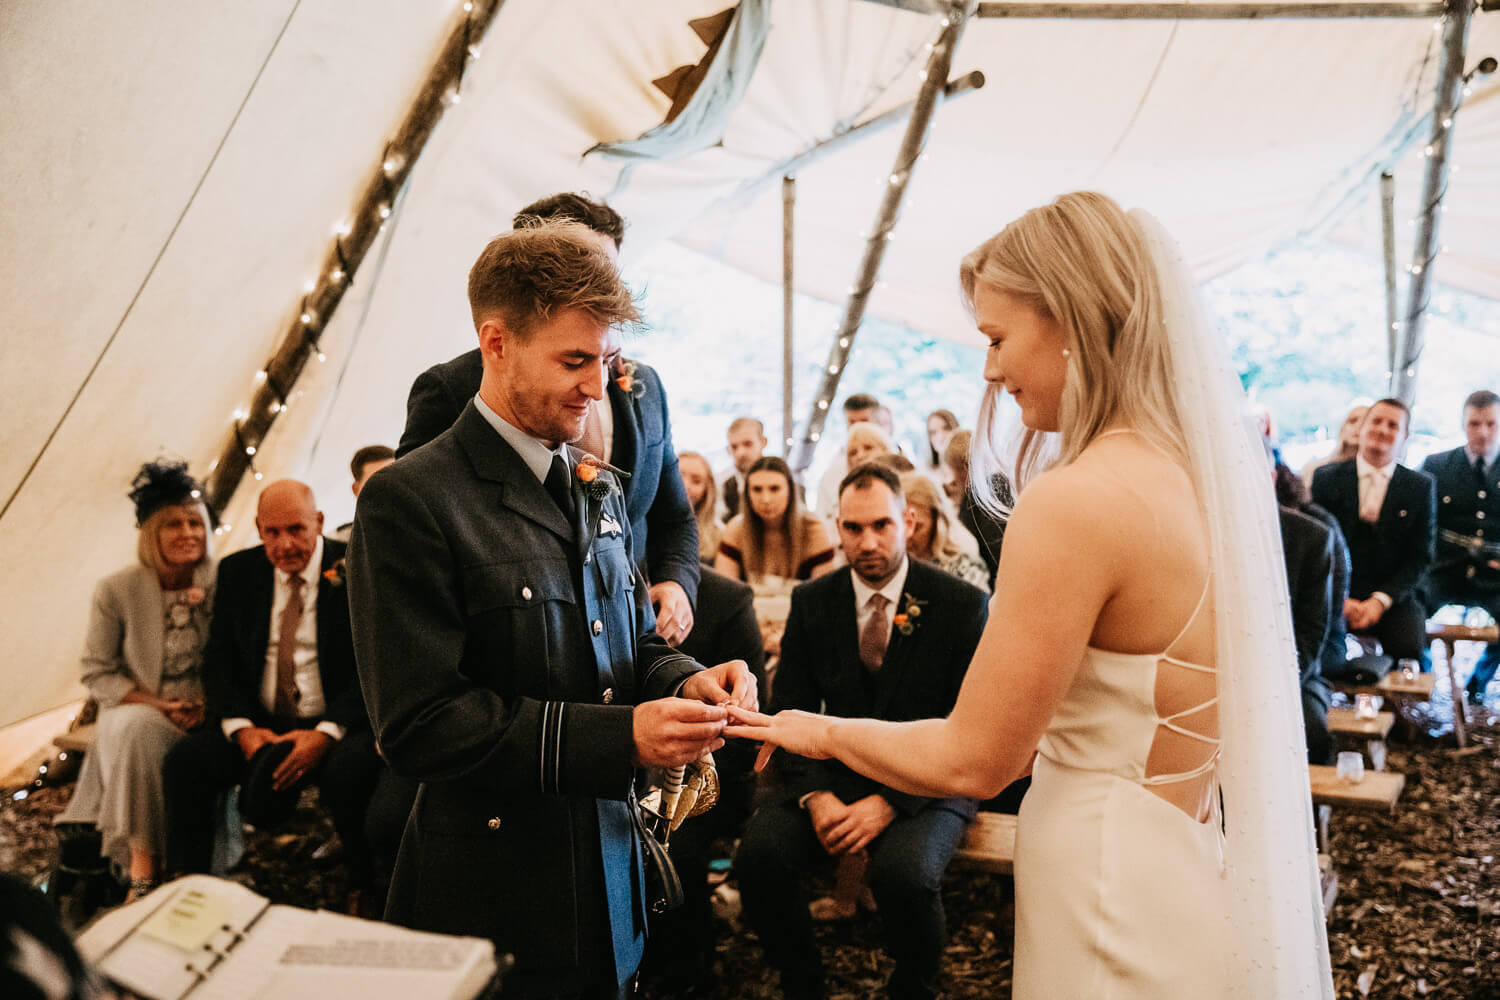 Exchanging rings at the outdoor ceremony